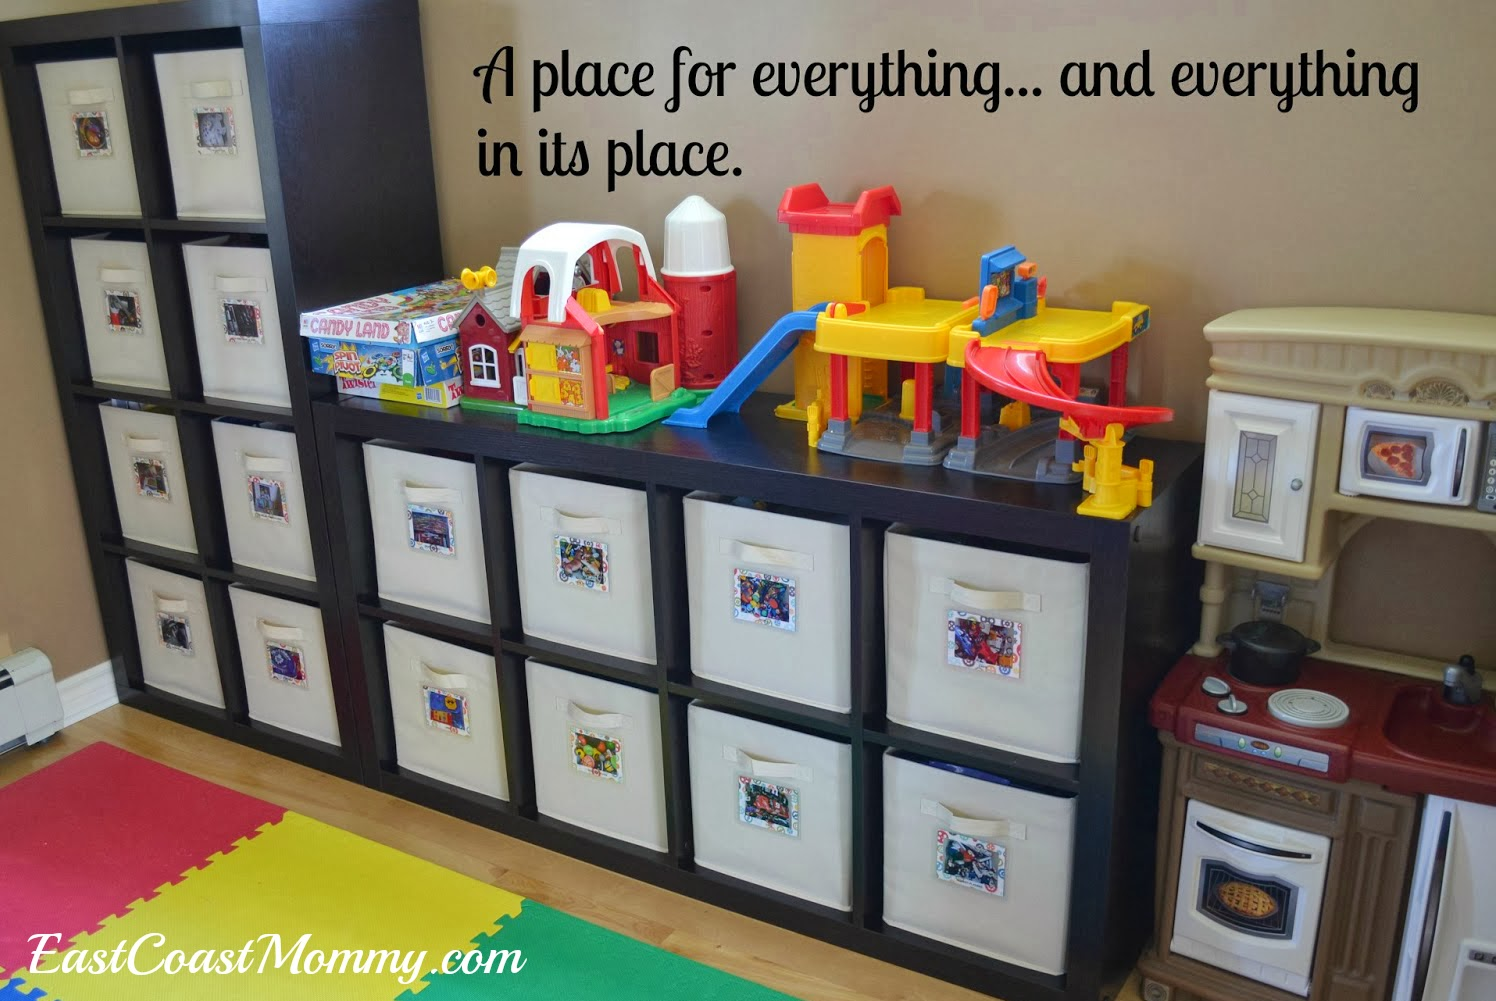 East Coast Mommy 15 Simple Ways To Get Organized & Simple Toy Storage Solutions - Listitdallas